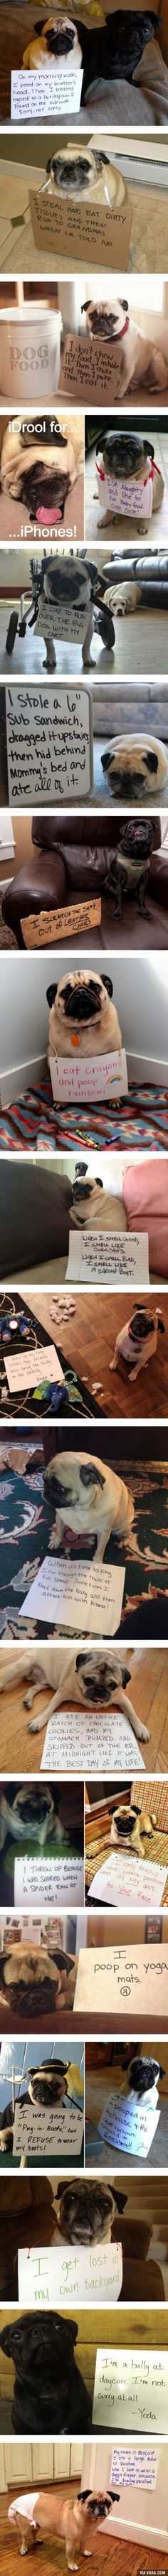 "Pug Shaming... Some of these are hilarious... The ""I only know one position"" thing must be a pug trait."